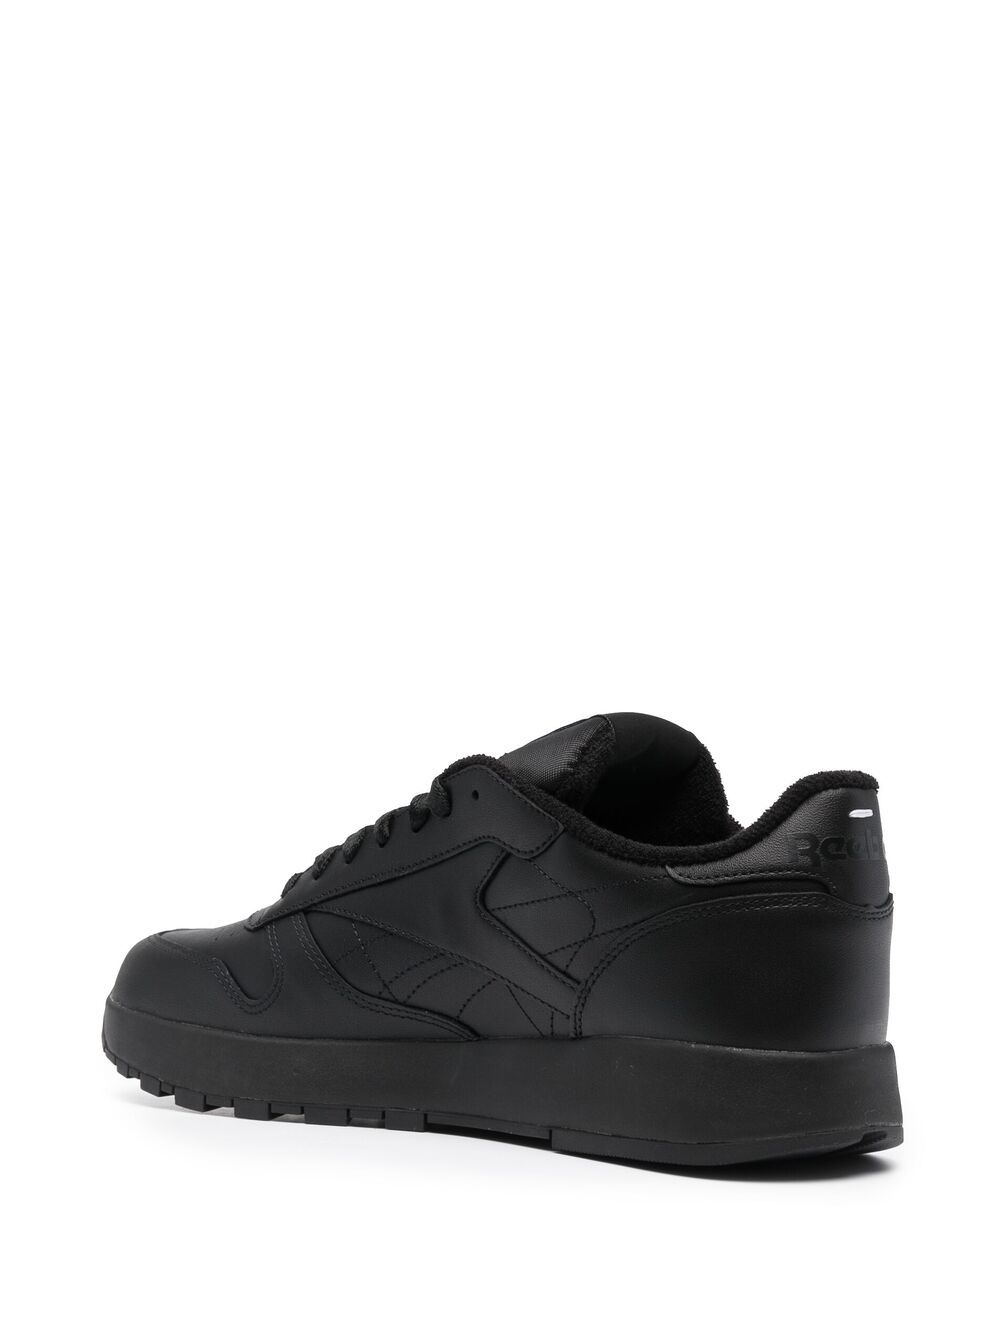 PROJECT 0 CL TABI REEBOK X MAISON MARGIELA | Sneakers | H04864BLACK